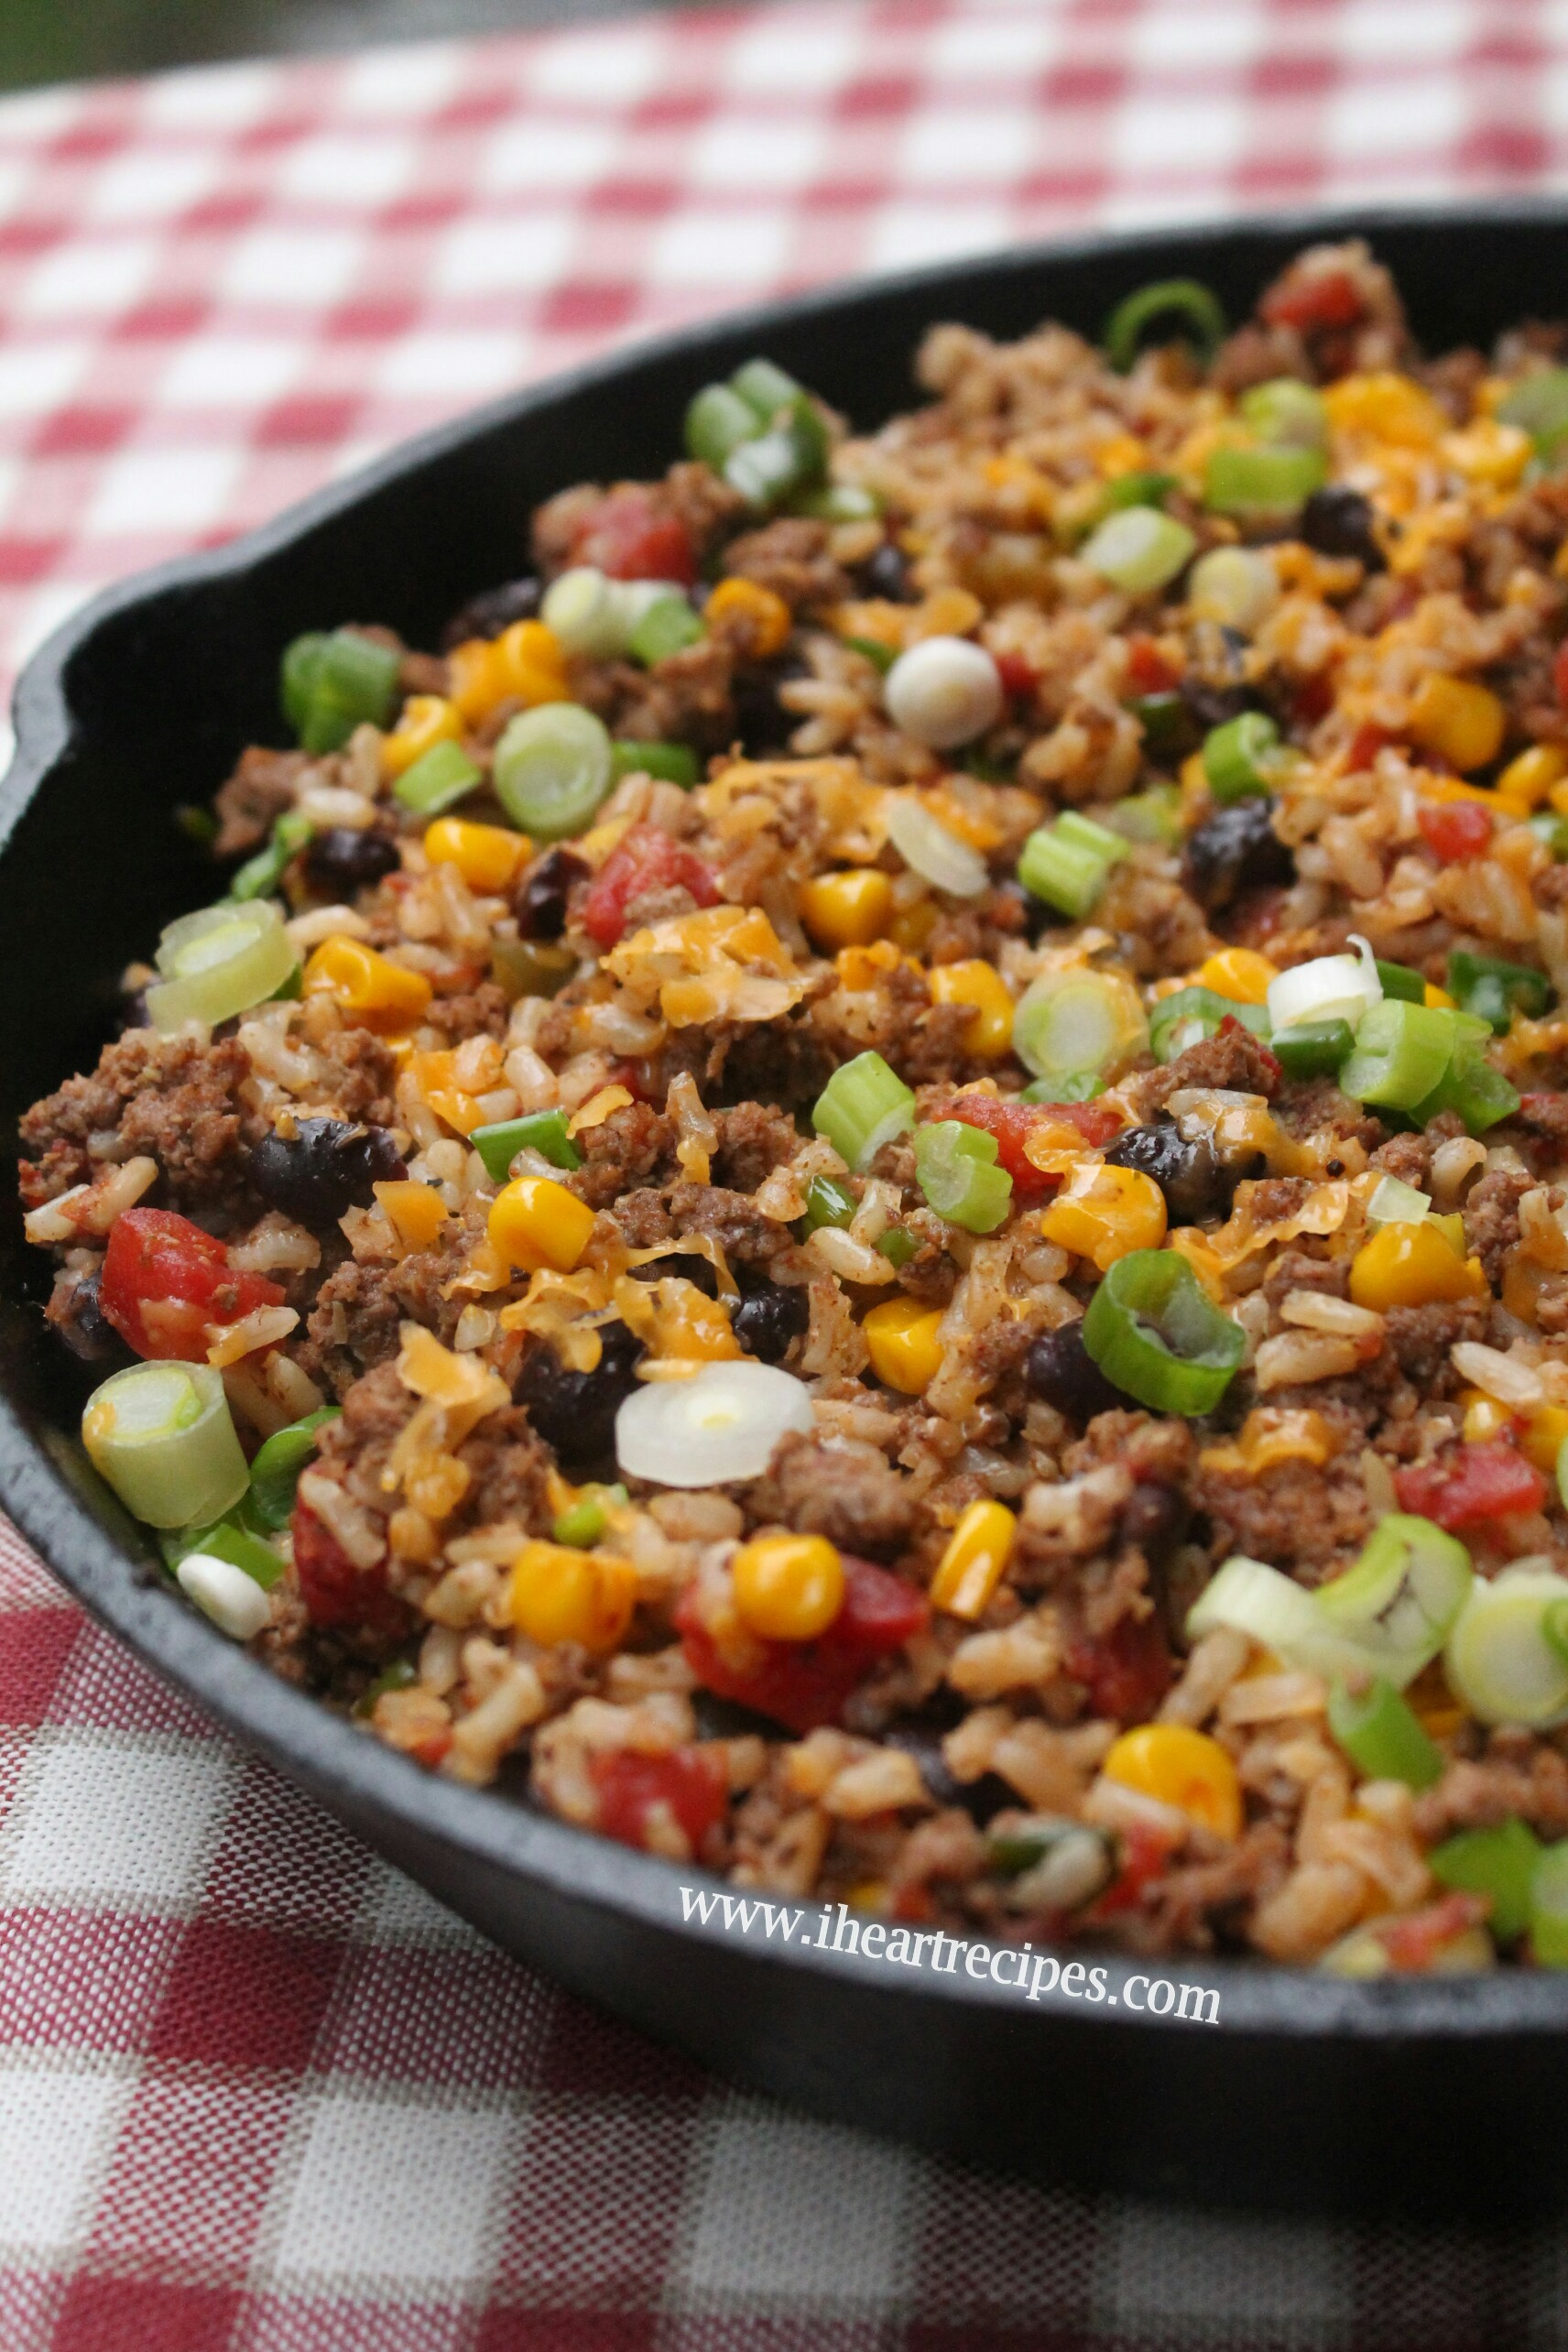 Tex mex ground beef skillet i heart recipes for Different meal ideas for ground beef